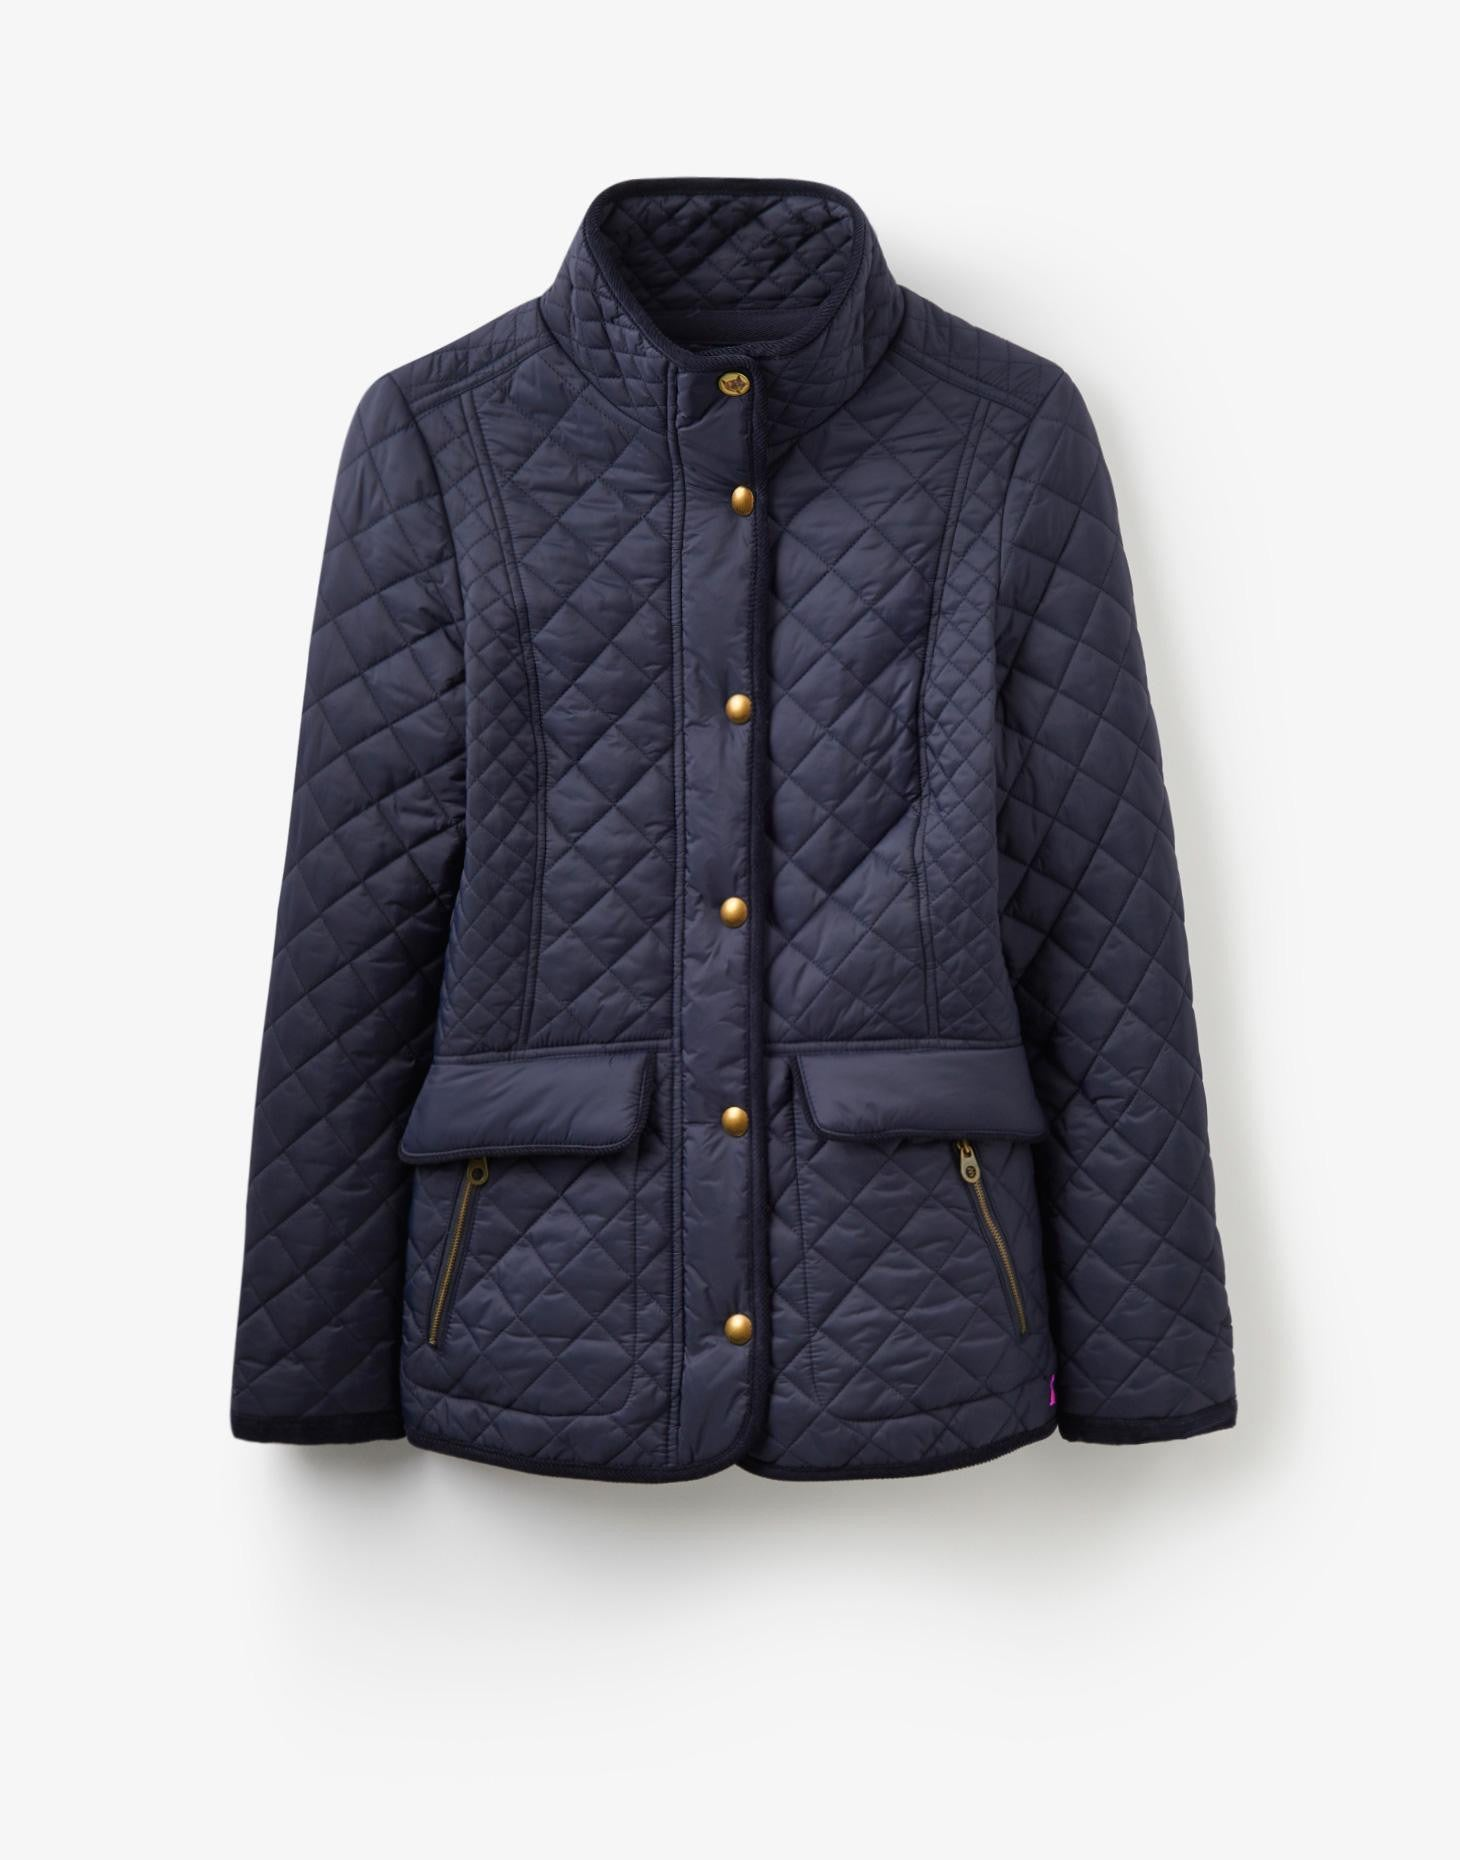 Joules Newdale Jacket - Navy by Joules from THE LUCKY KNOT - 3